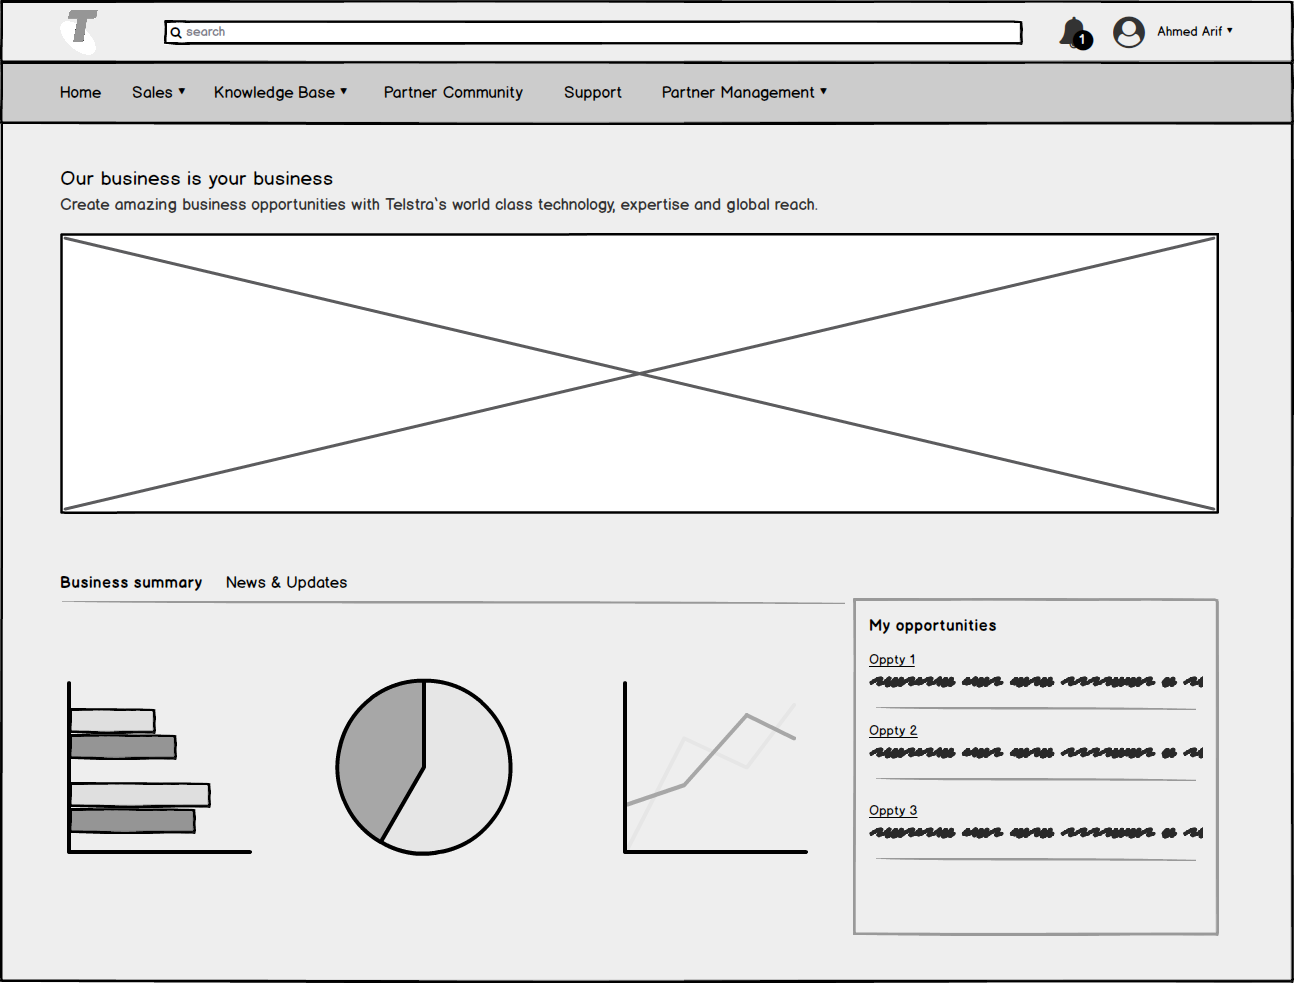 Wireframes were created early and iterated on rapidly